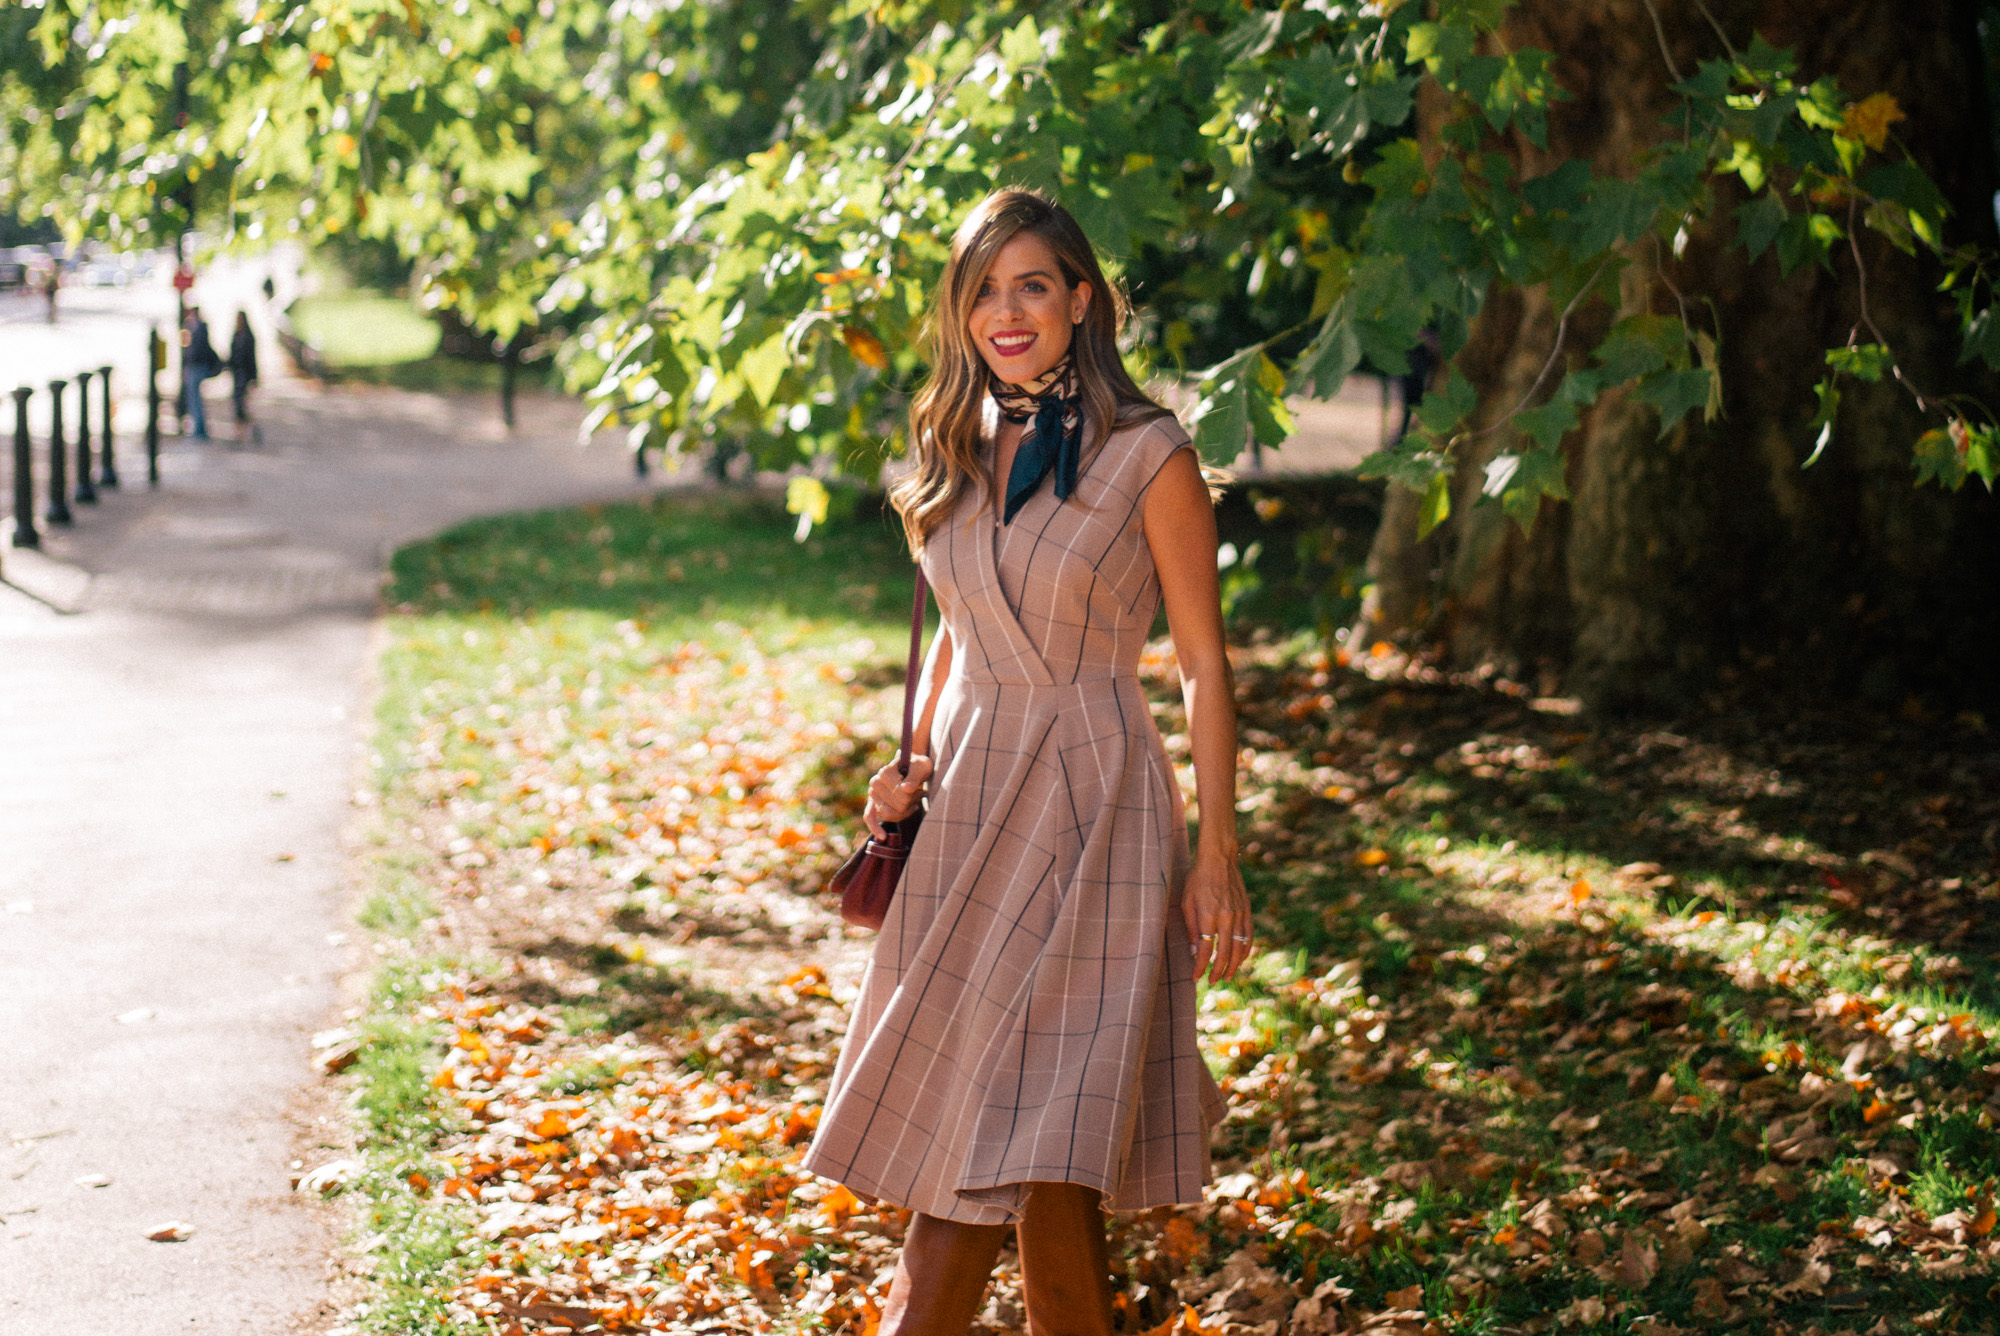 3 Items To Help You Style Dresses For The Fall Season